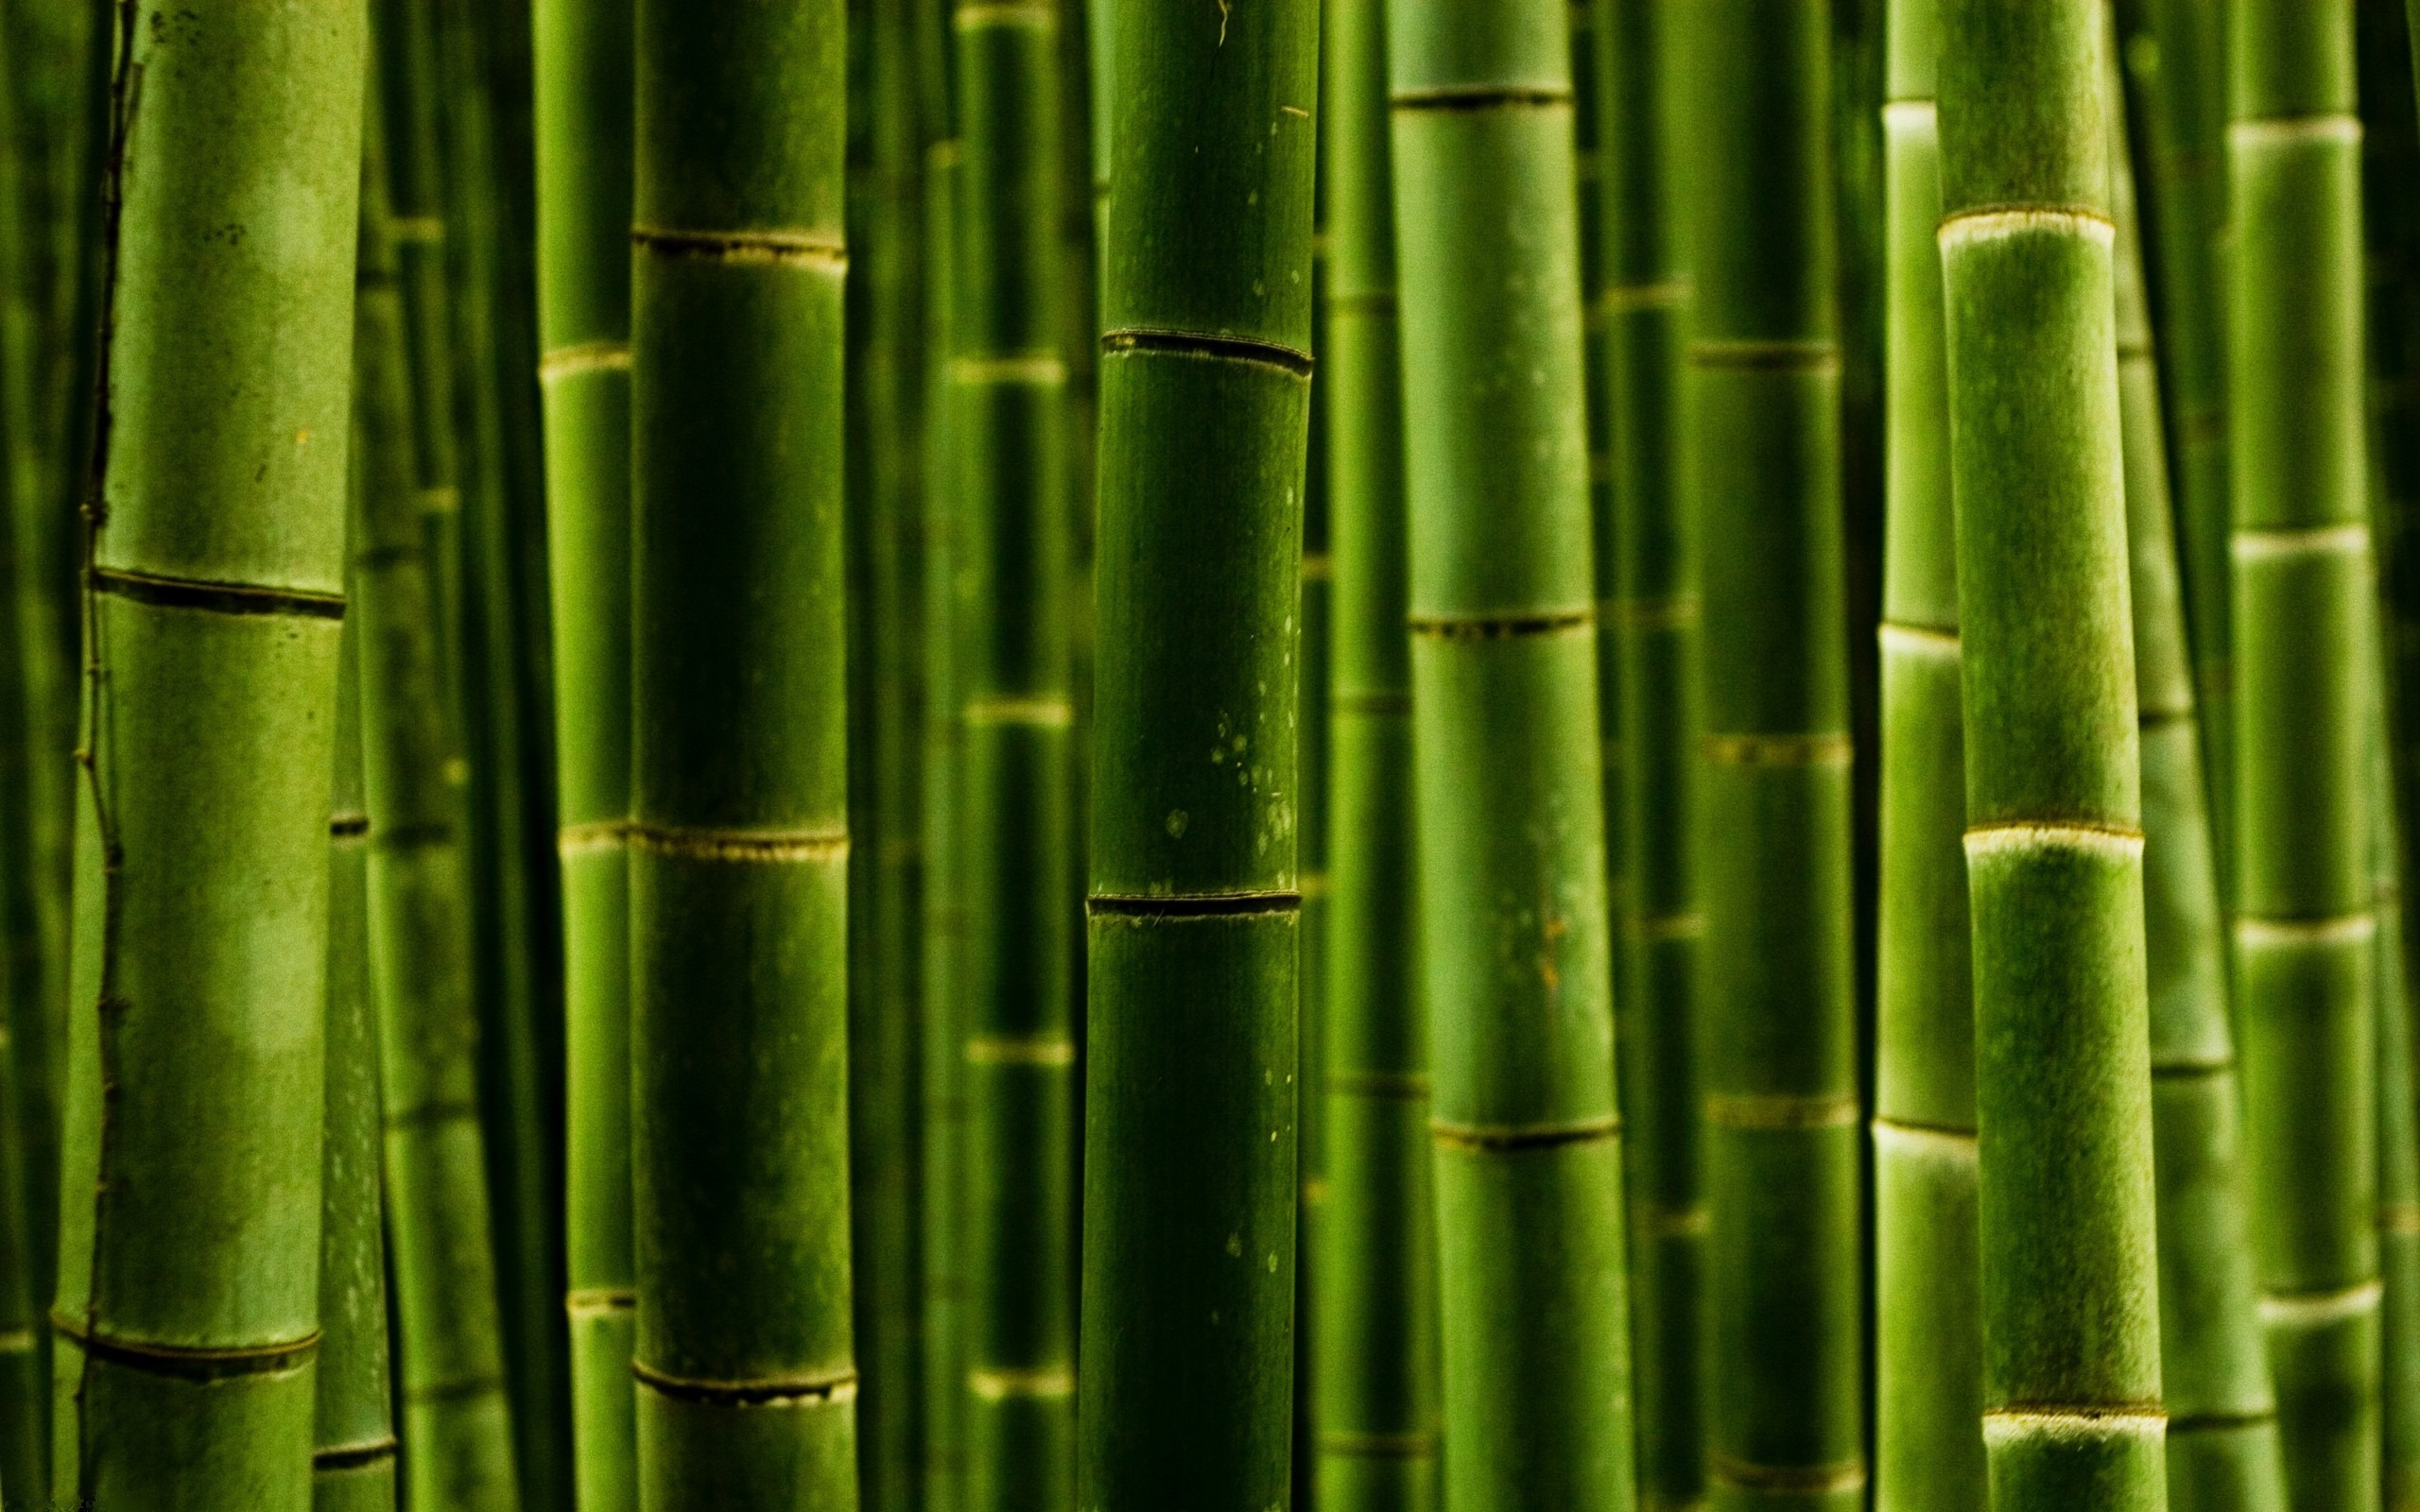 abstract backgrounds wallpaper bamboo - photo #5